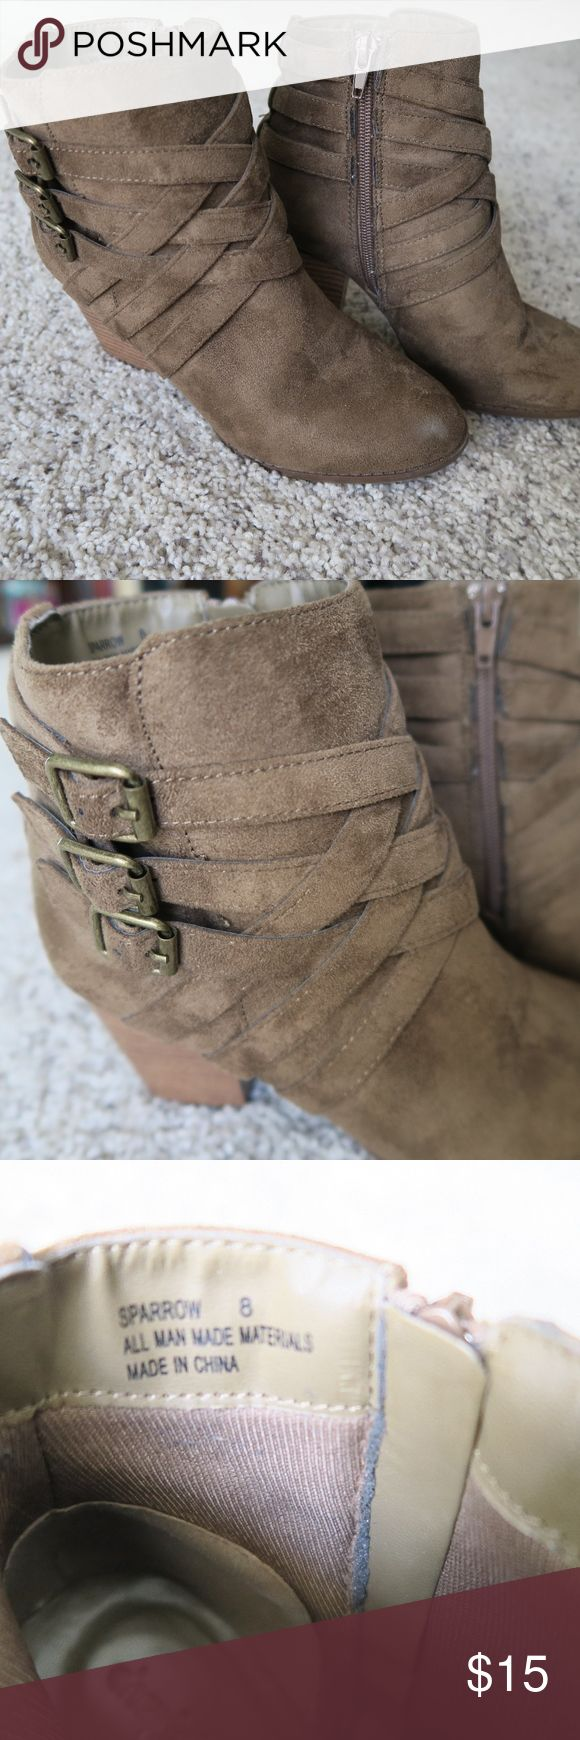 Criss Cross Boots - Size 8 Criss cross detailed boots from Charlotte Russe. Suede material. Sort of a green/brown color. Great condition. Slight wear shown on bottoms of the shoes, around the zippers and one white mark shown in the last photo on the right shoe. Thumb nail shown as size reference. Make me an offer. No trades. Charlotte Russe Shoes Ankle Boots & Booties